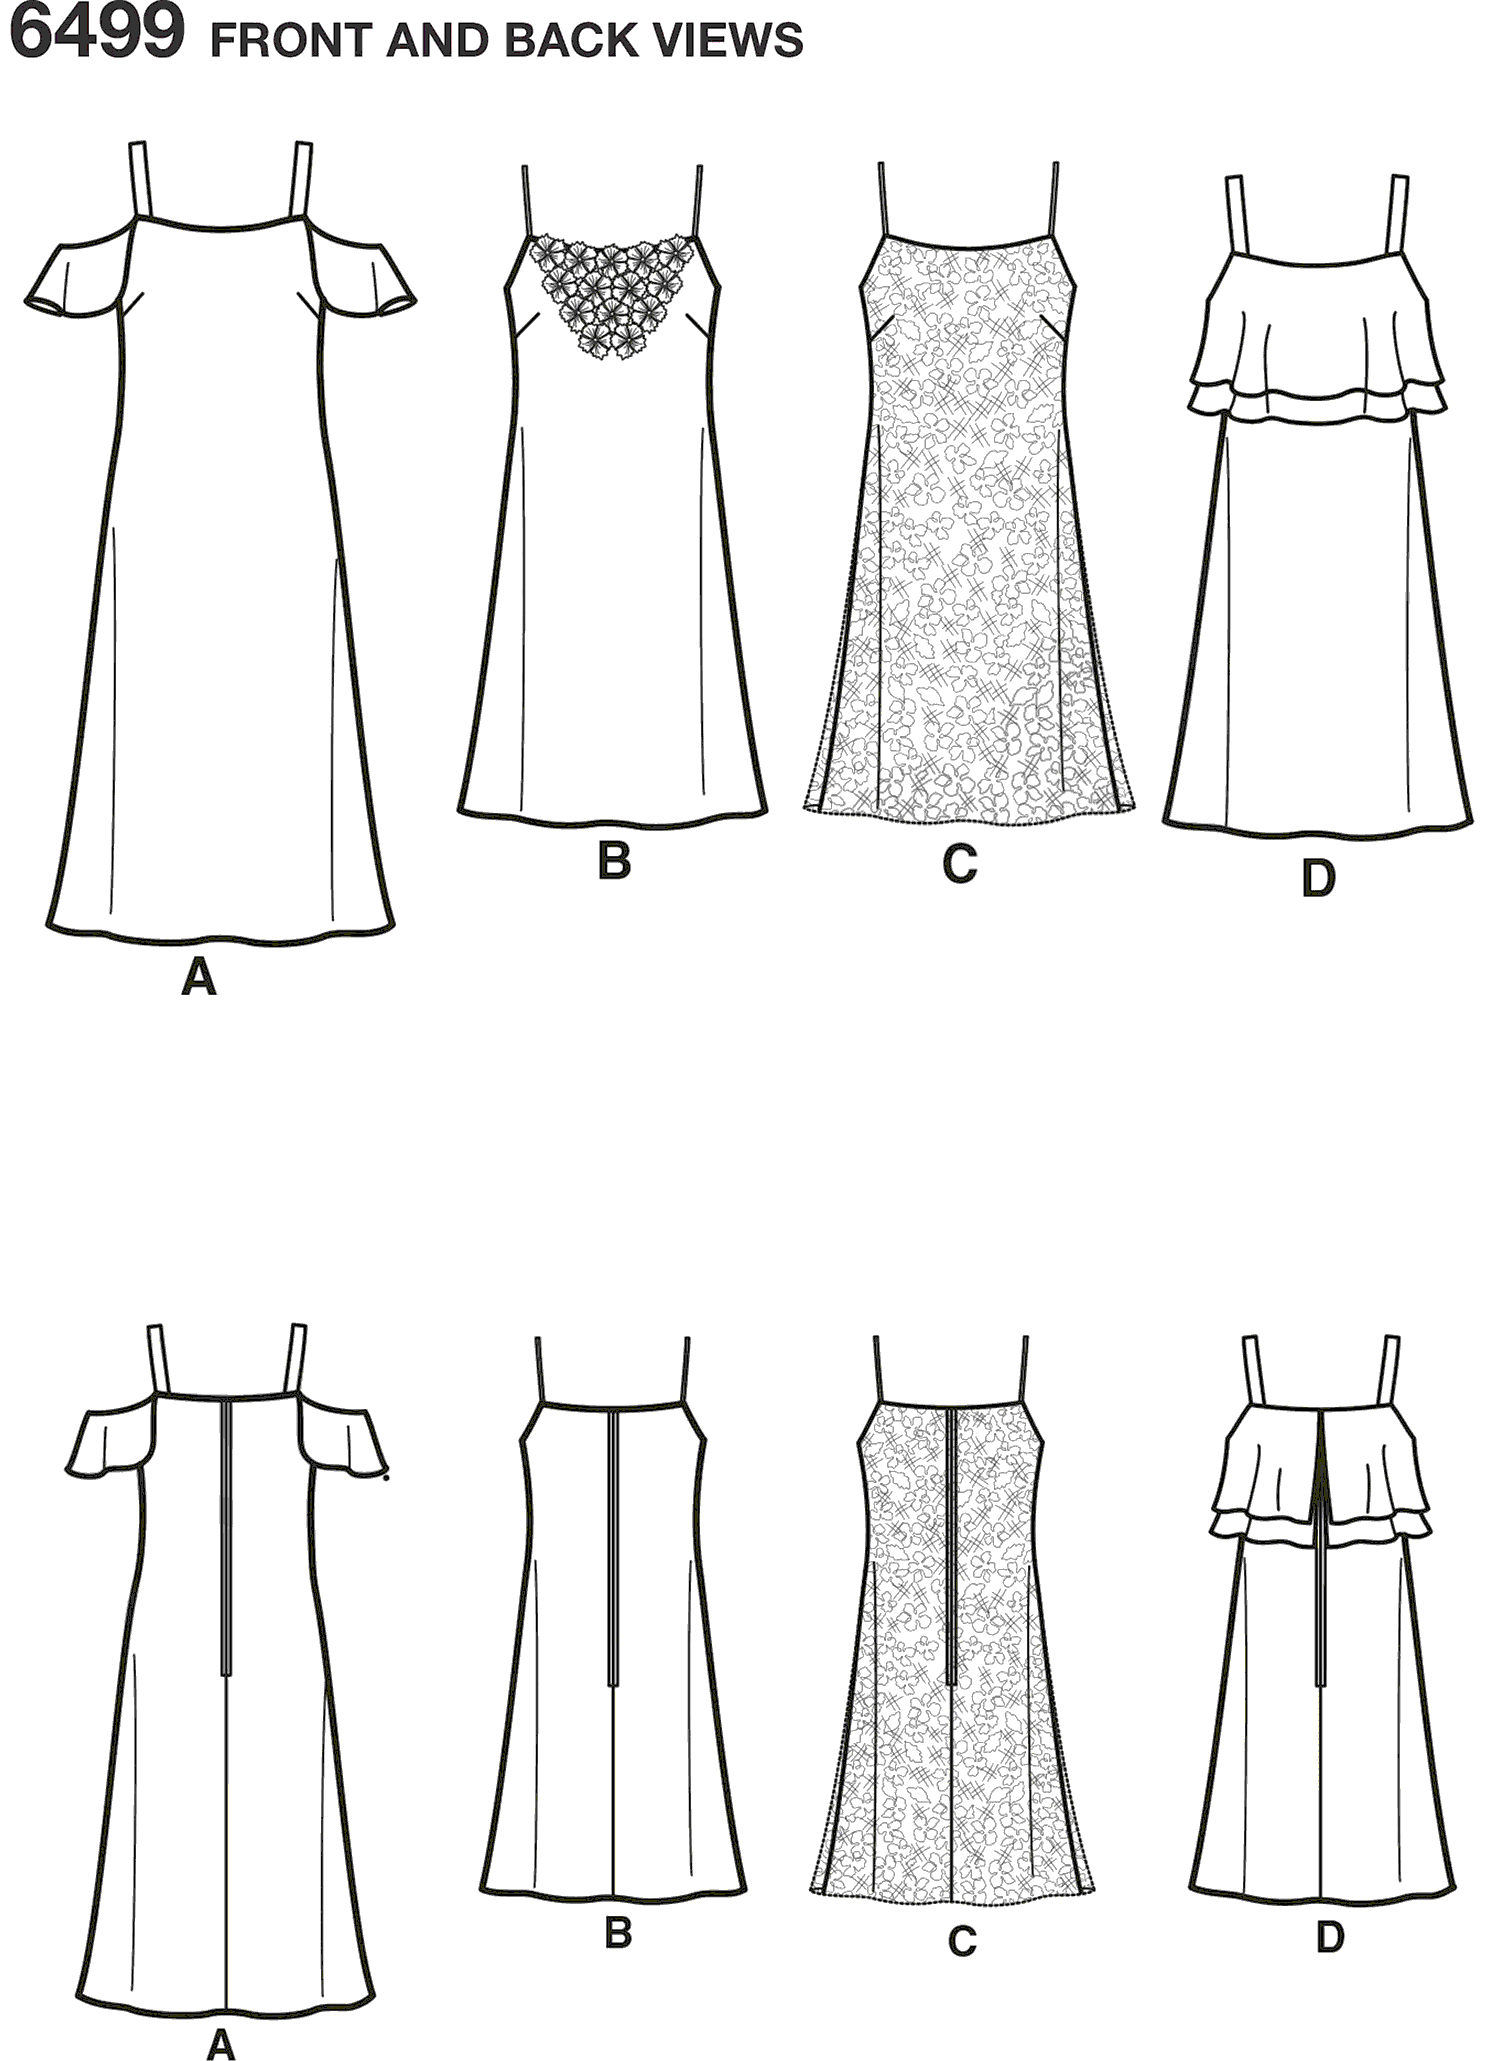 New Look Pattern 6499 Misses Spaghetti Strap Dresses with Length Variations Line Art From Patternsandplains.com